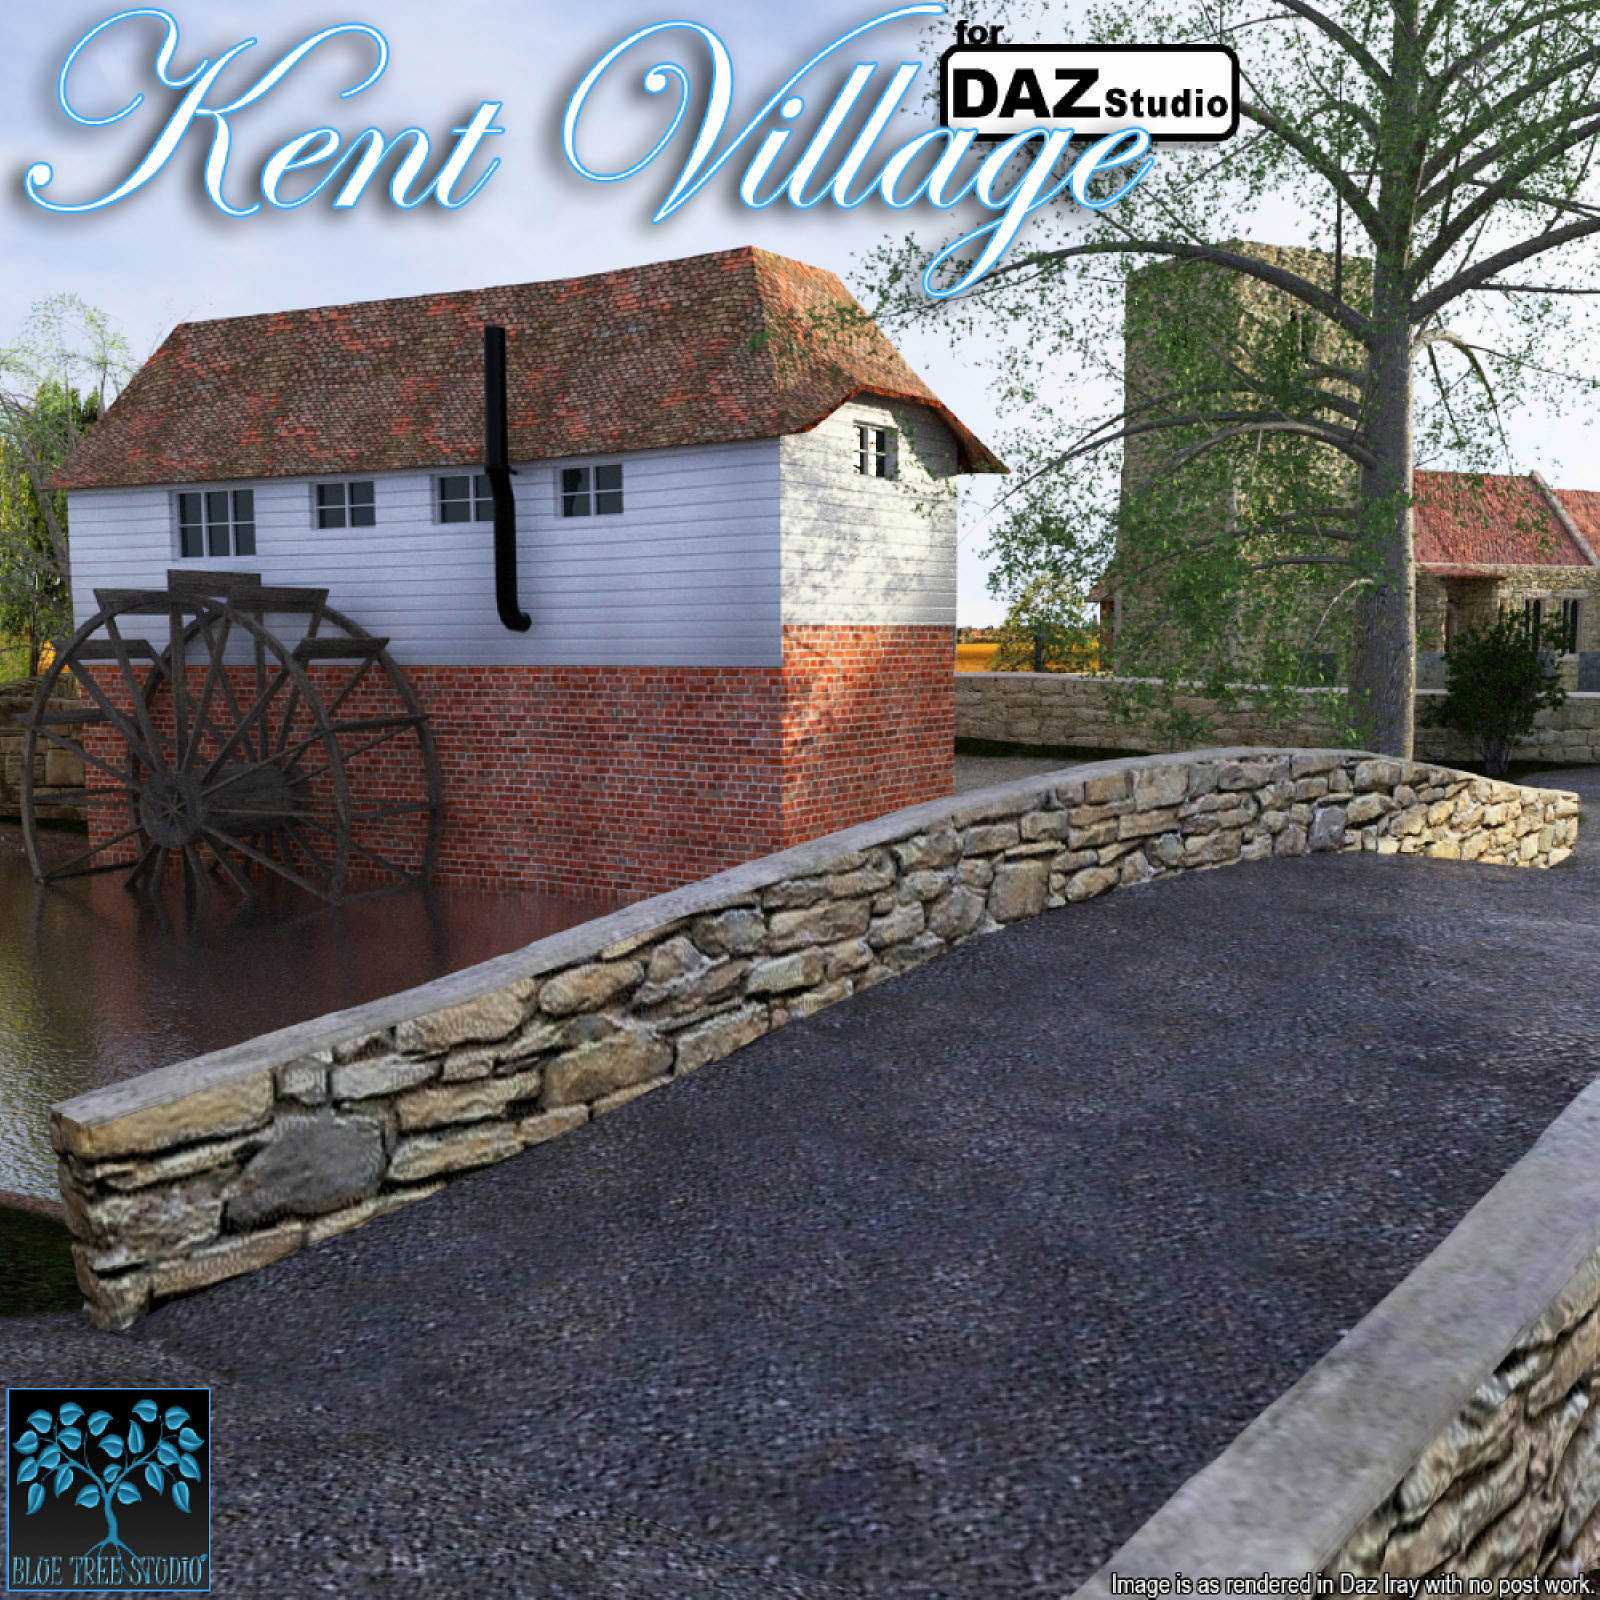 Kent Village for Daz